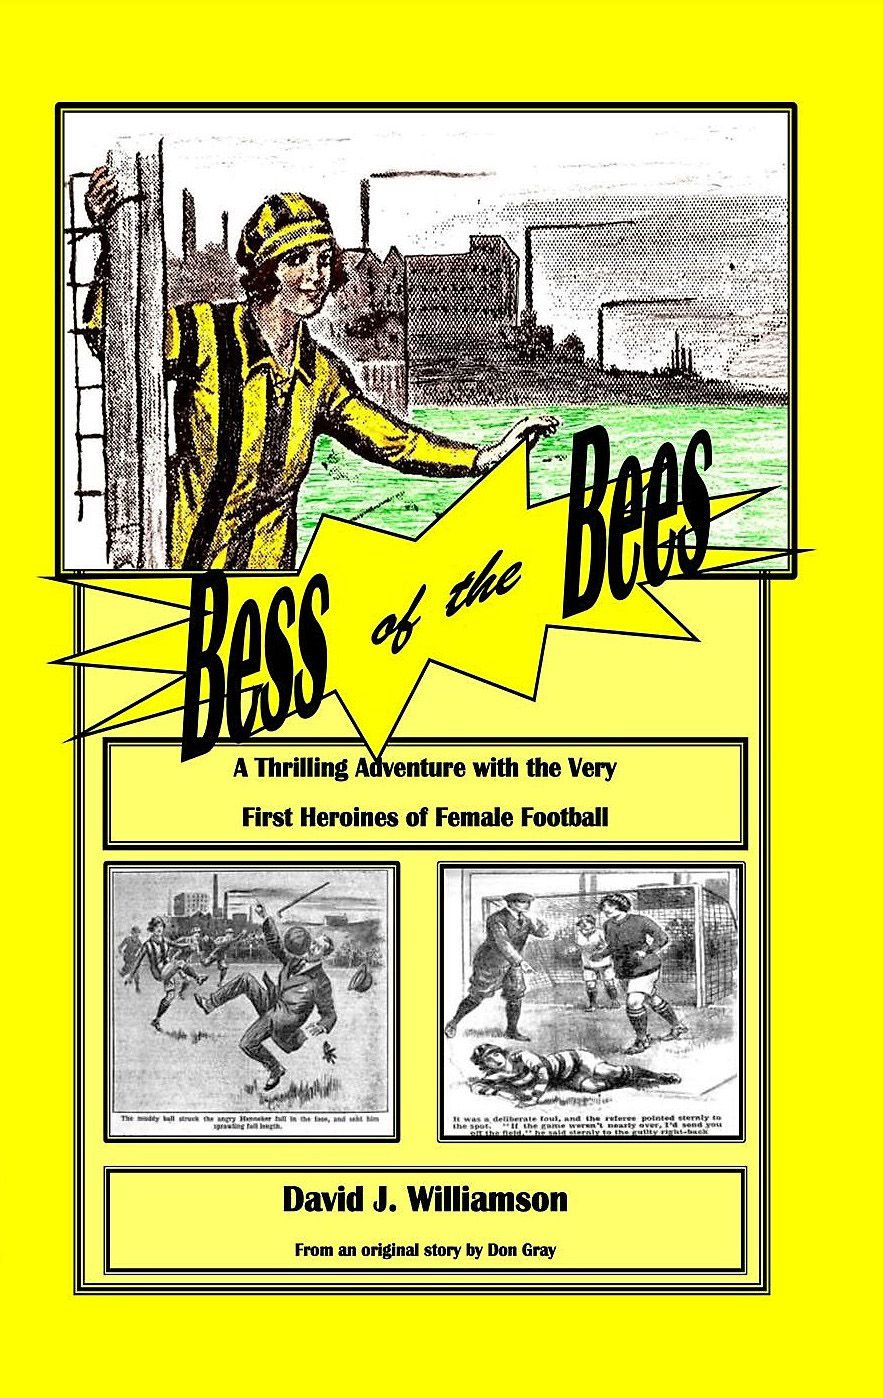 Great original women's soccer adventure from 1922 available from amazon and kindle